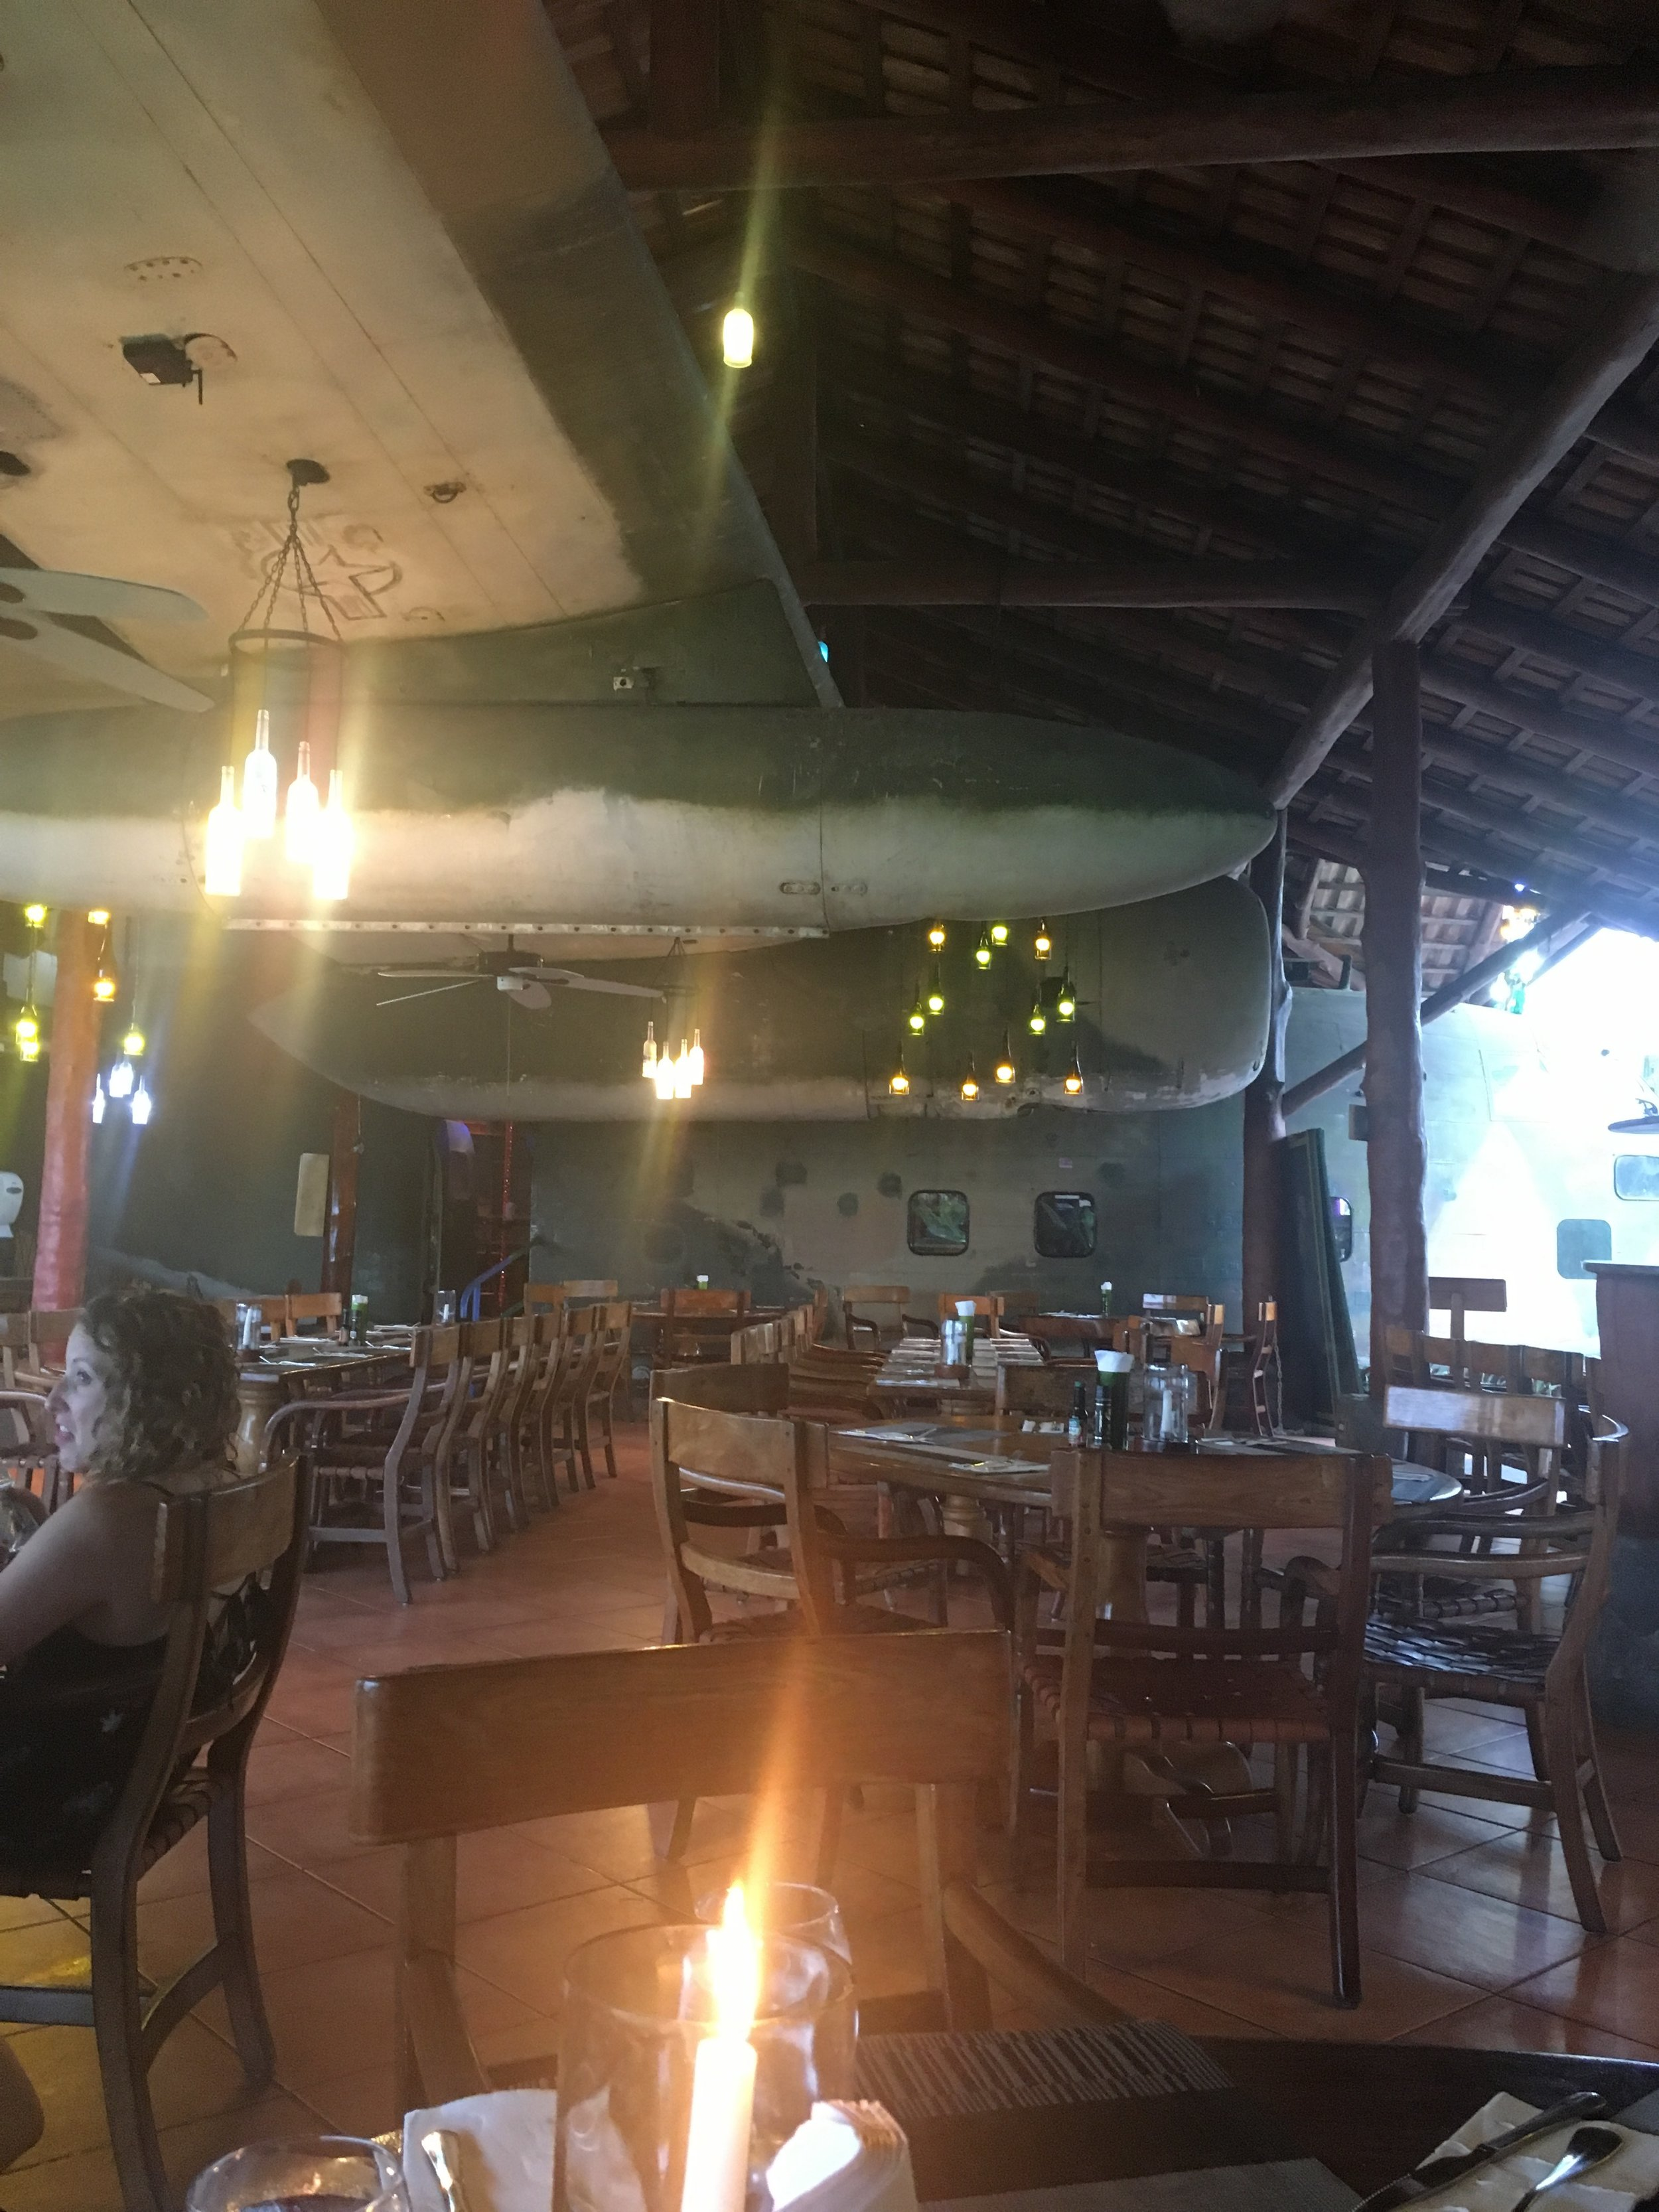 El Avion in Manuel Antonio, which features a C-123 Fairchild cargo plane that's been converted to a two level bar and restaurant